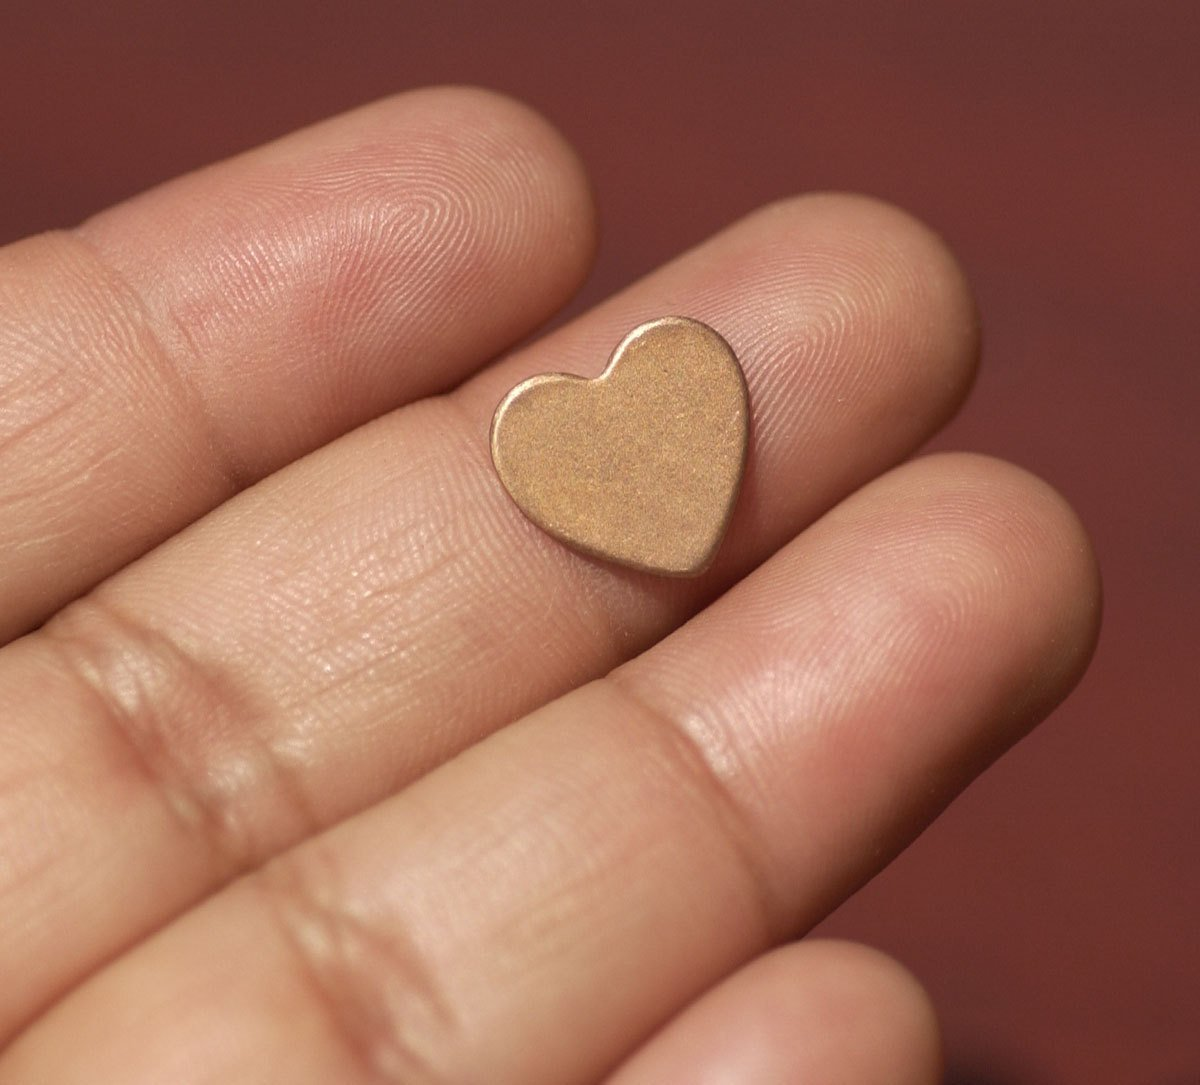 Copper Heart Blank Tiny Classic 13mm x 12mm 24G Cutout for Enameling Stamping Texturing - Jewelry Supplies - 8 pieces